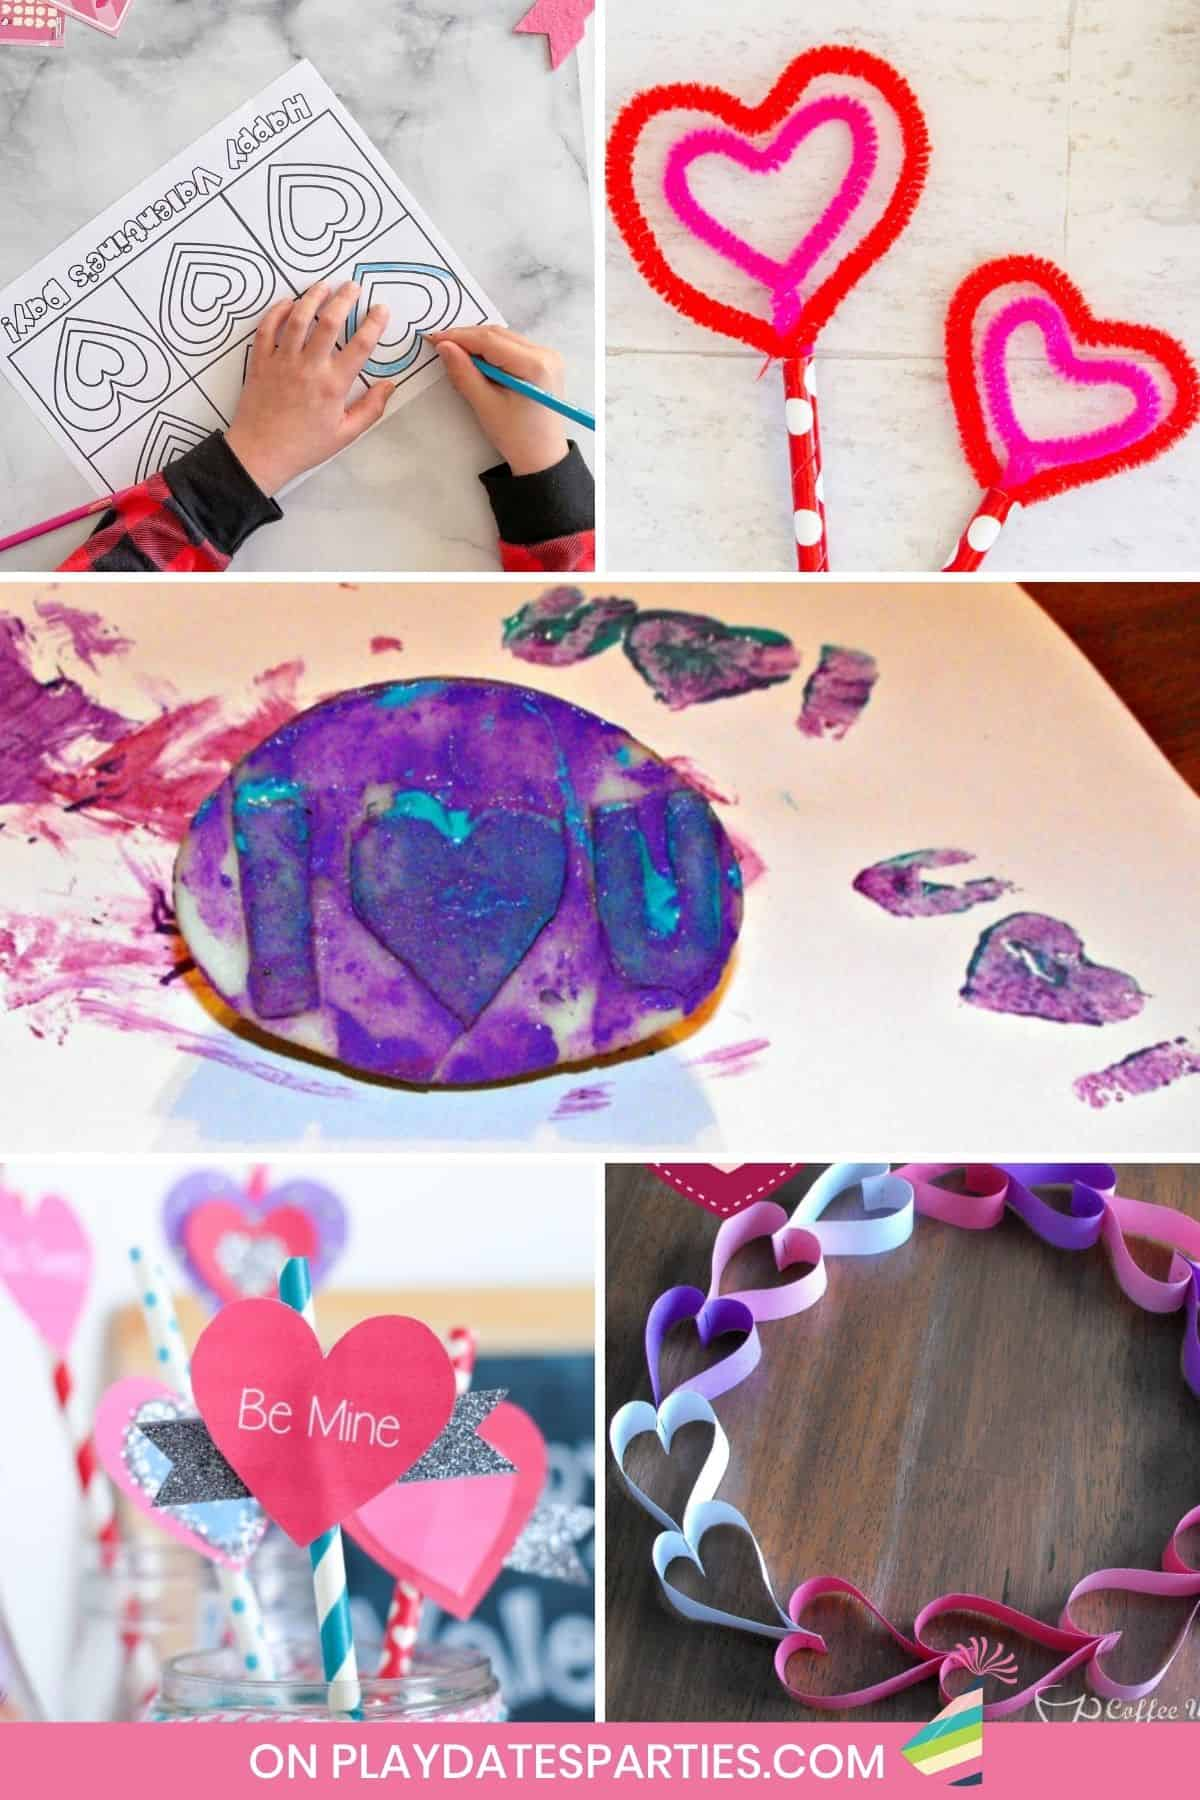 11 Adorable Valentine's Day Crafts for Kids